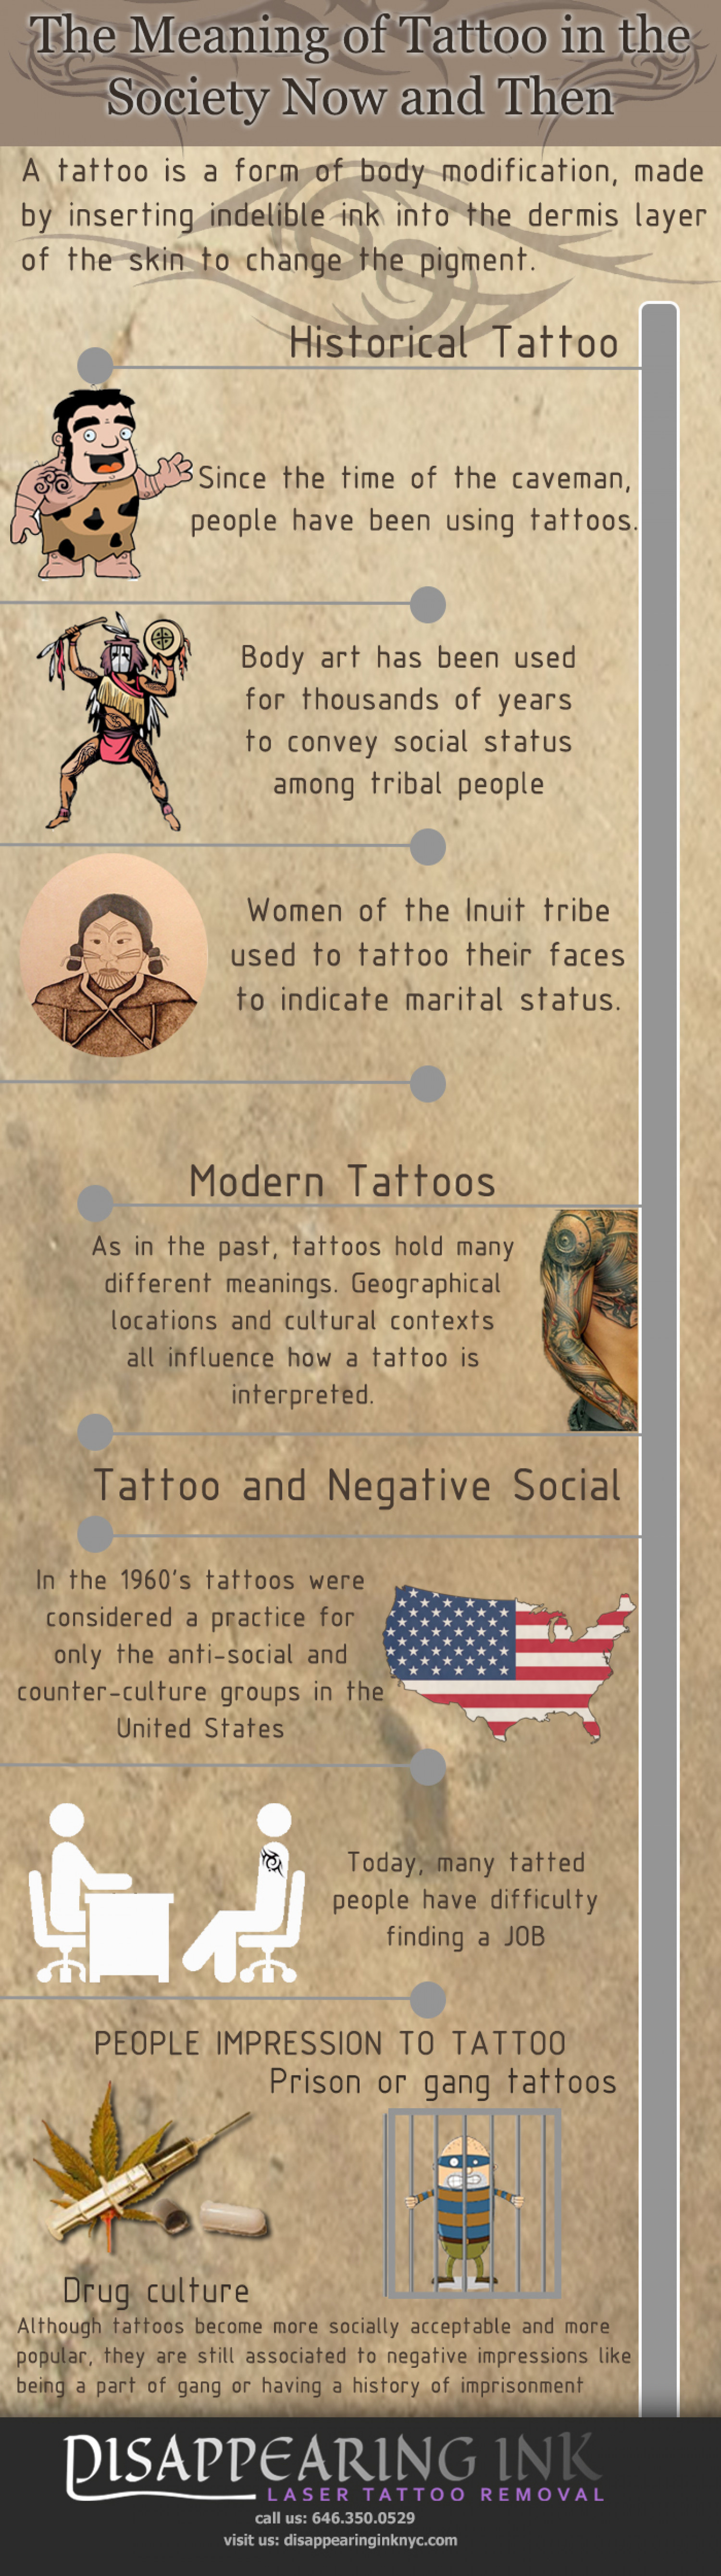 The Meaning of Tattoo in The Society Now And Then Infographic